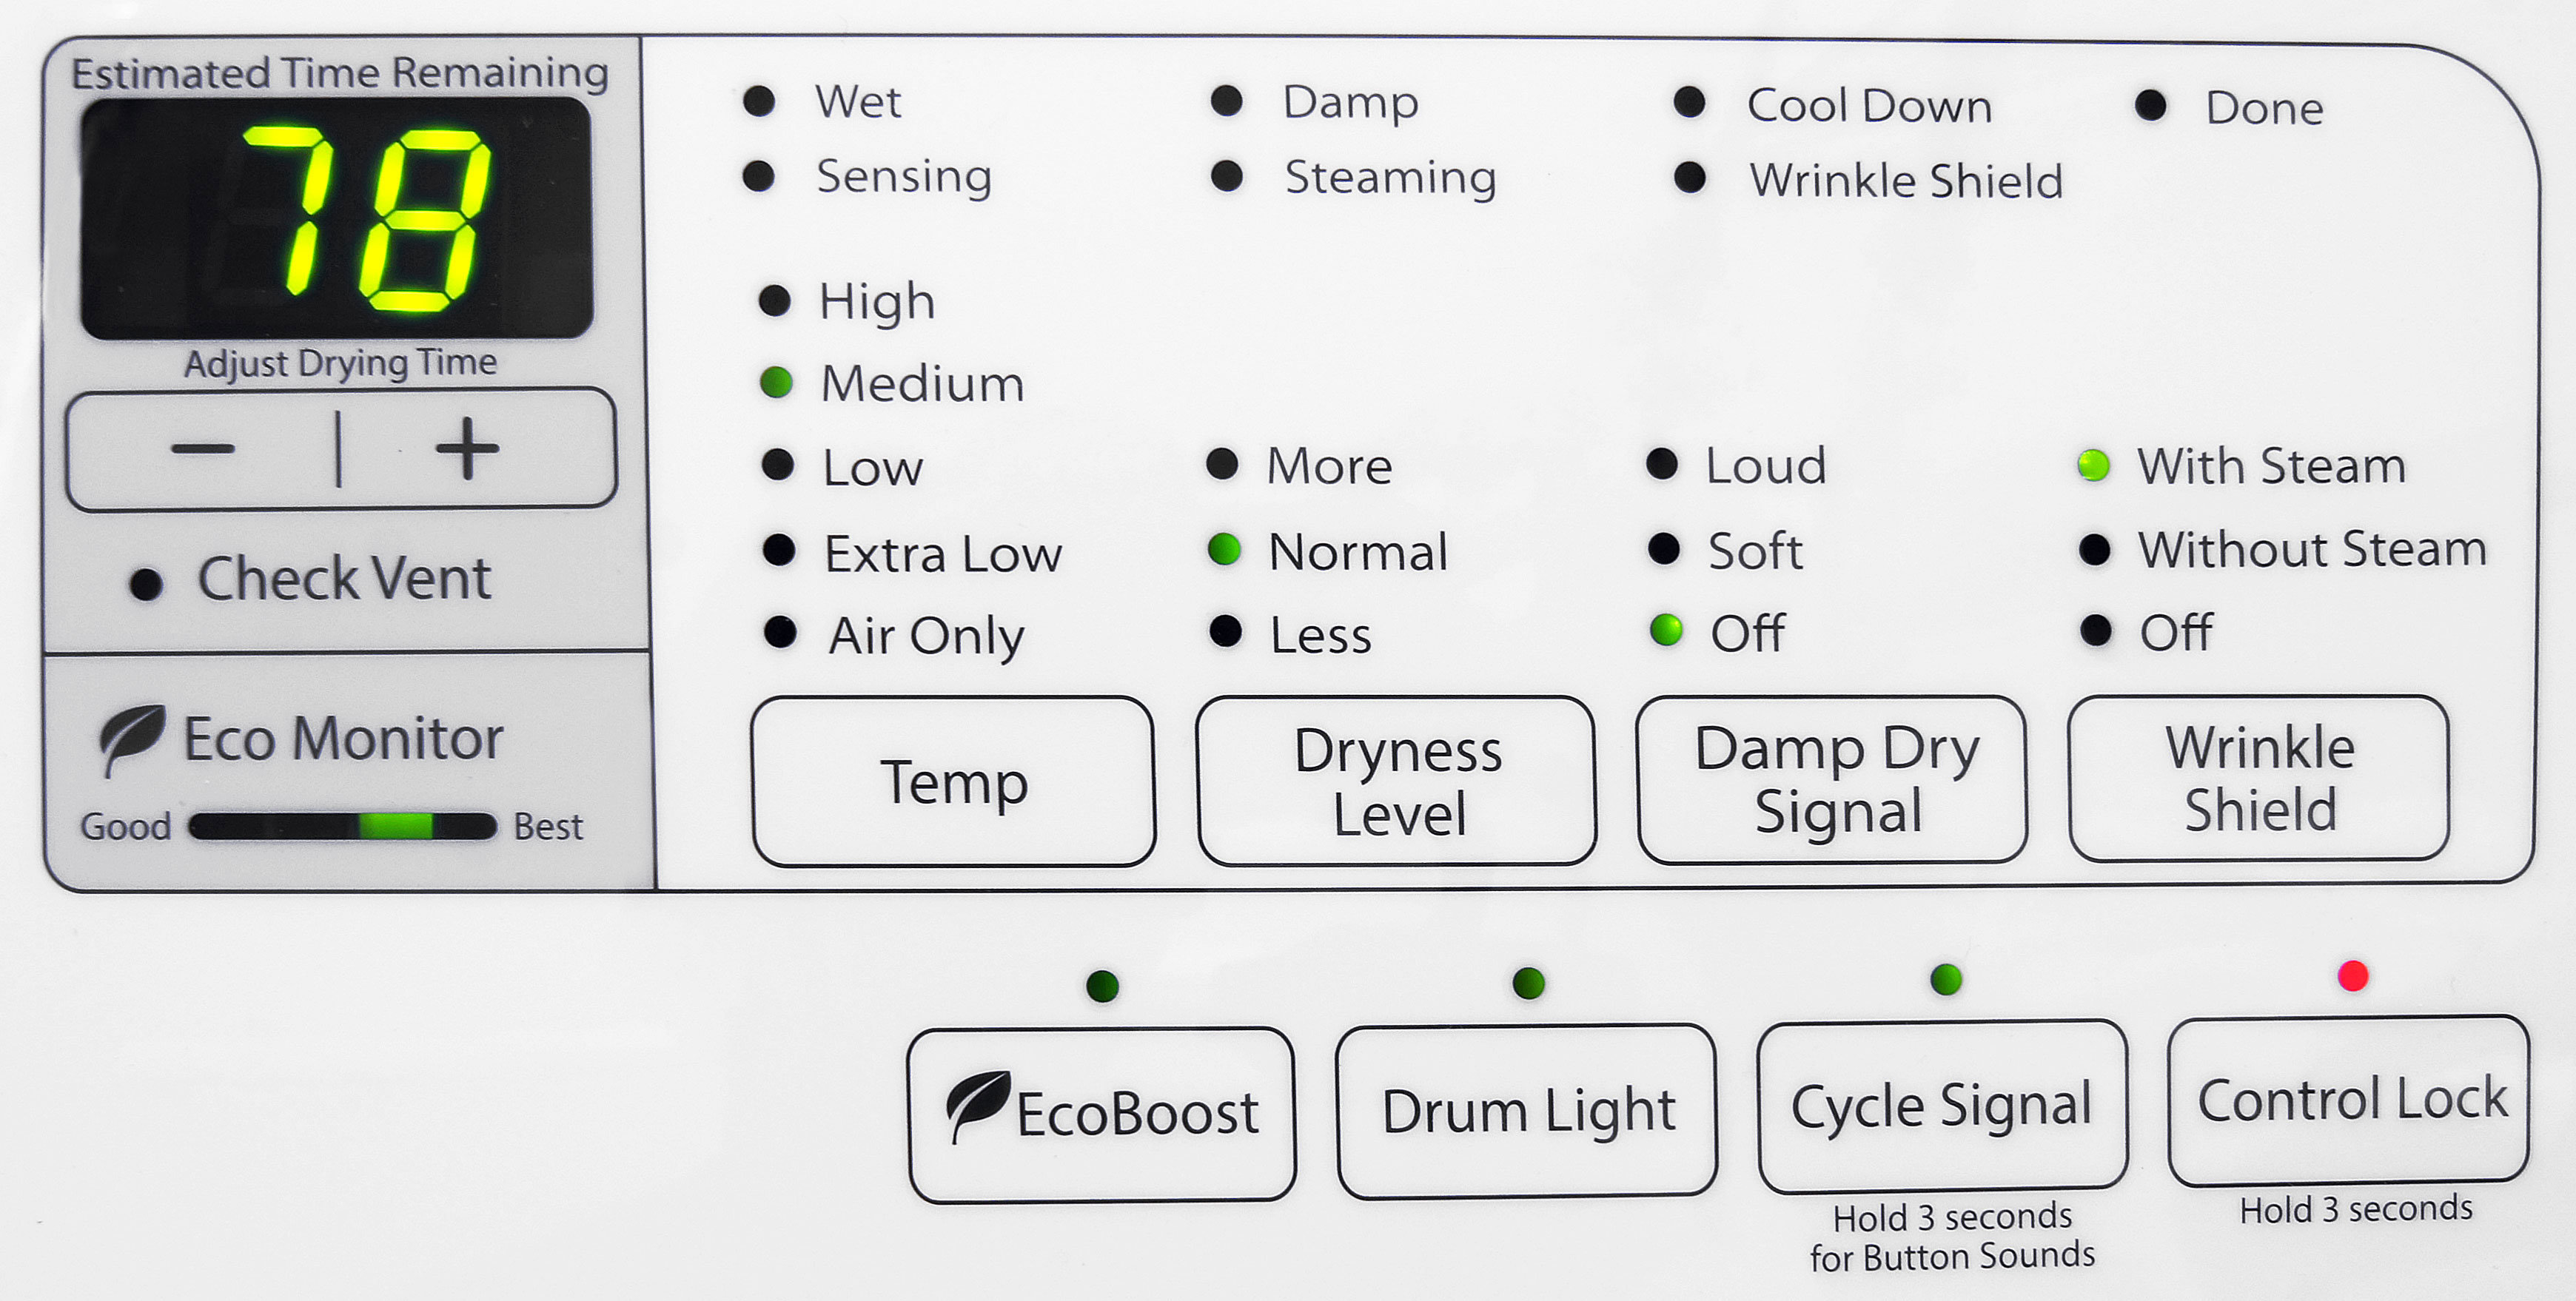 For a dryer with so few features, the Whirlpool Duet WGD87HEDW sure has a lot of indicator lights.